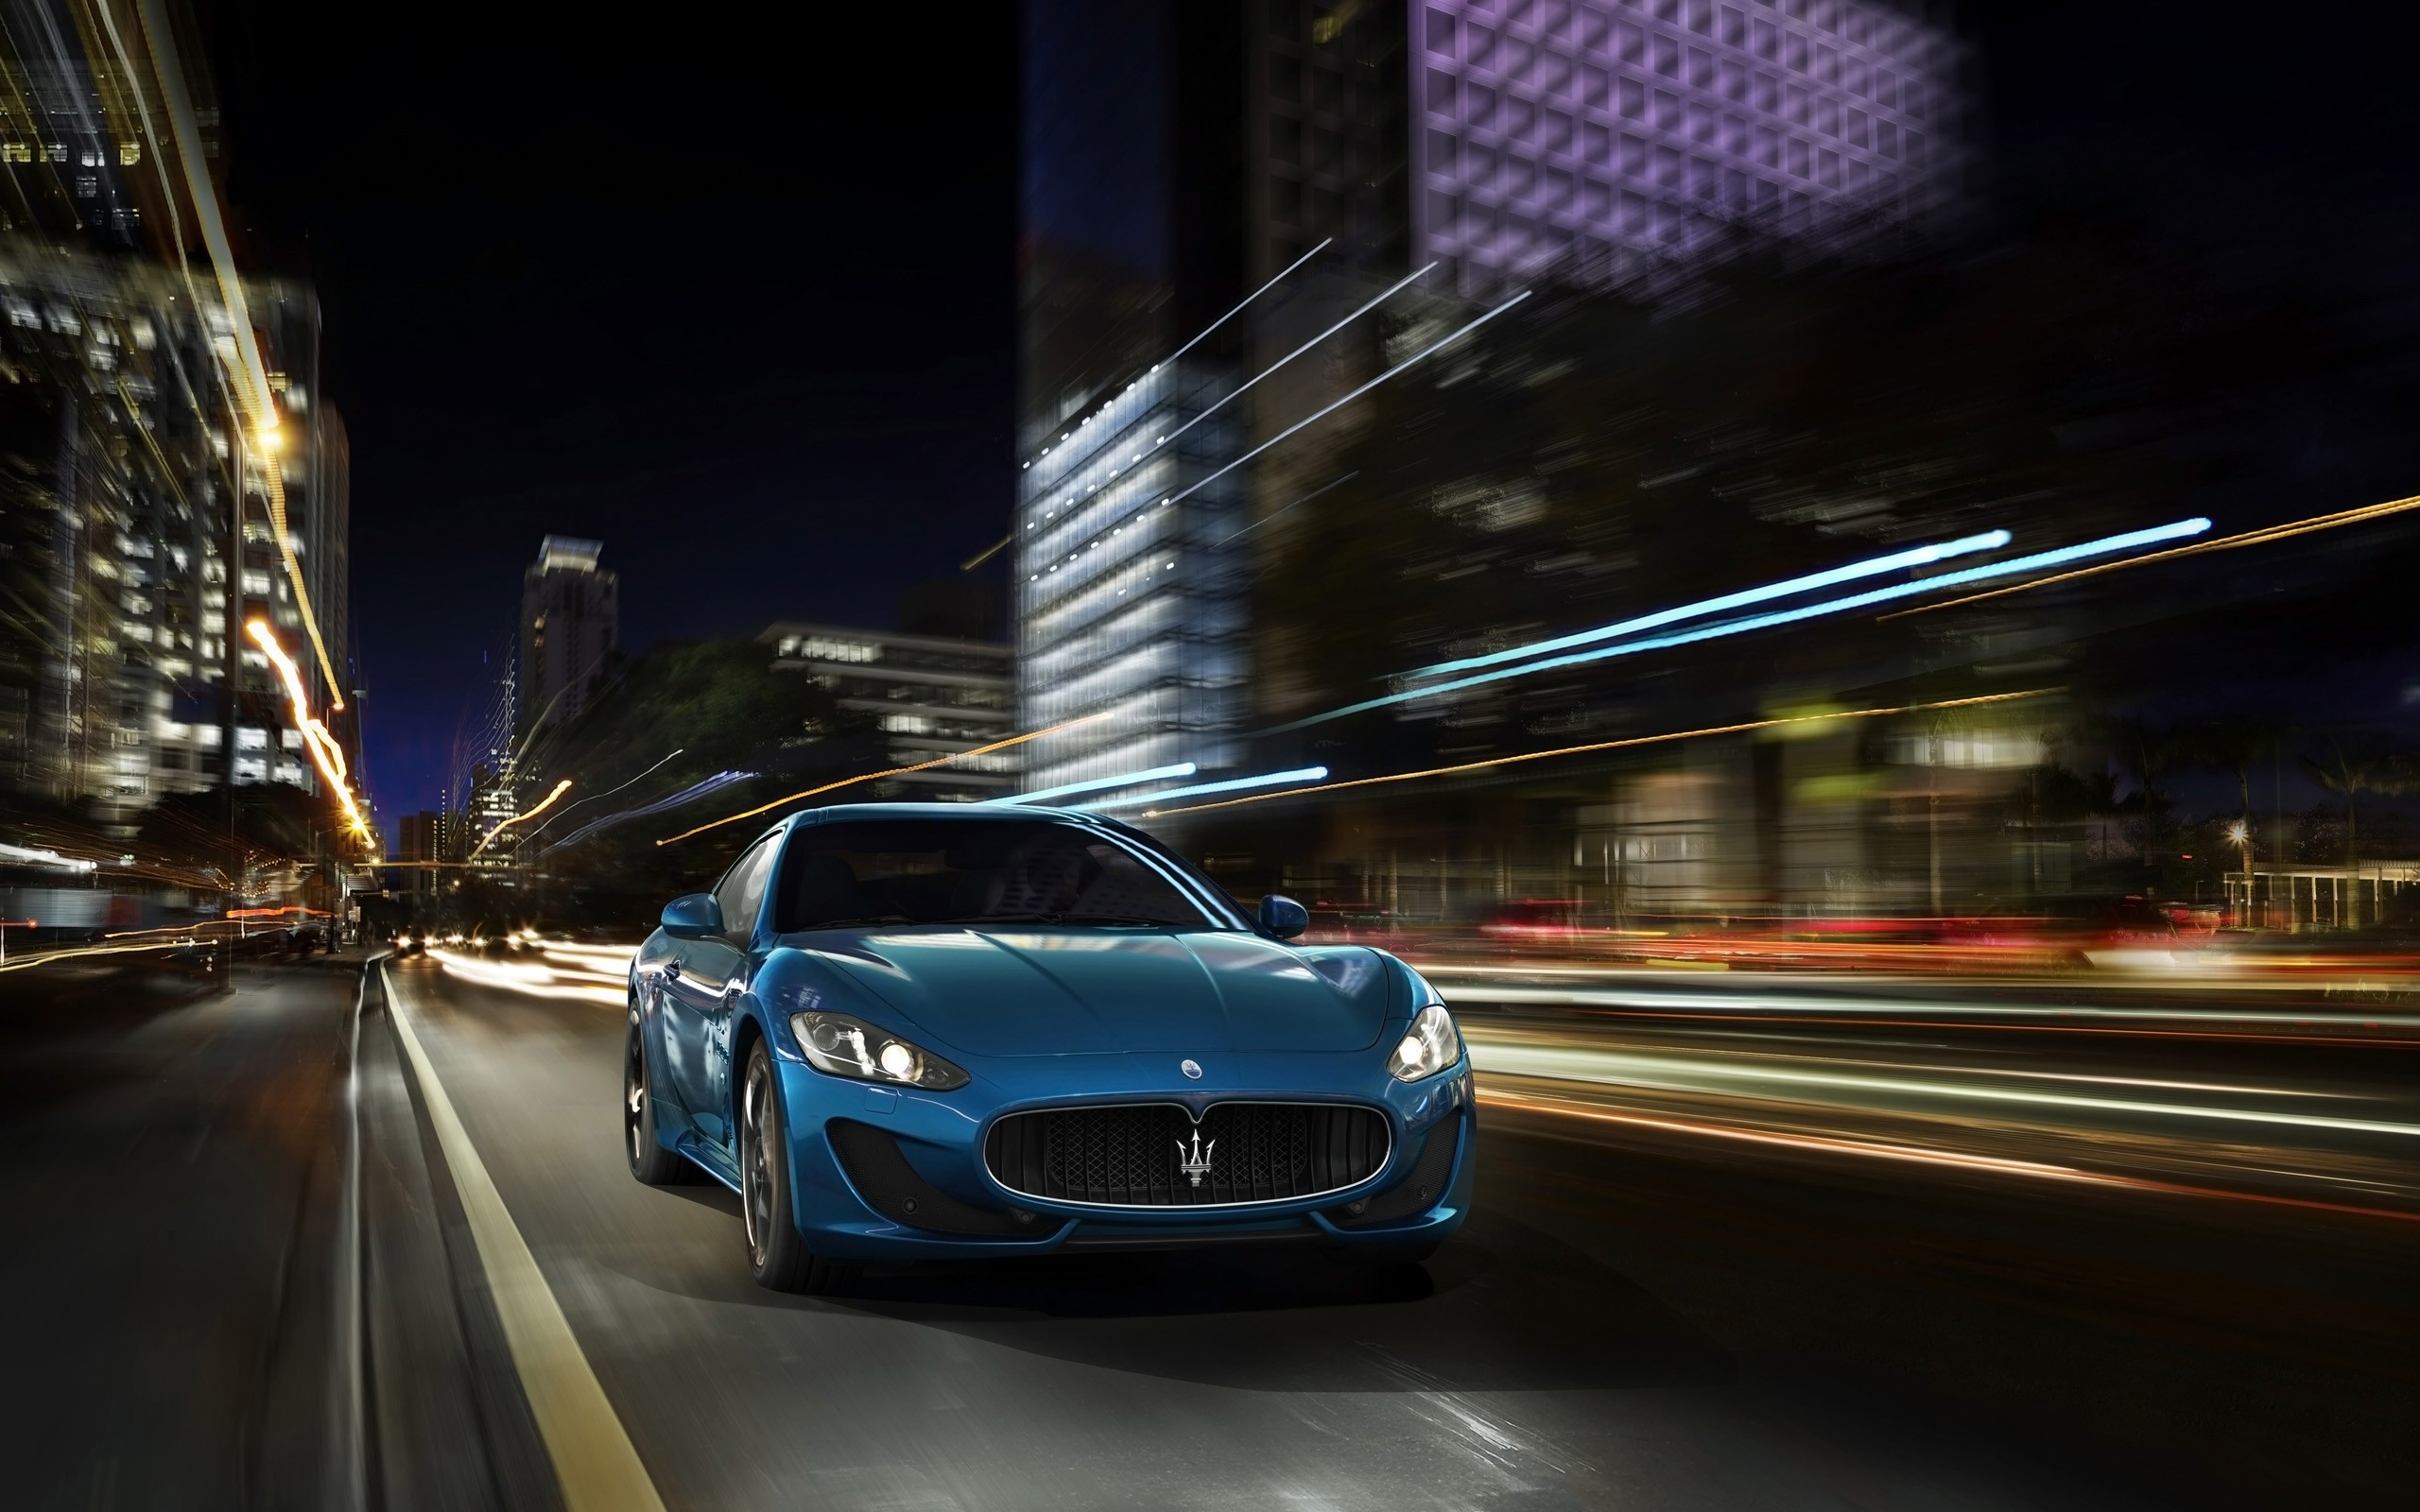 Gran Turismo Sport Iphone Wallpaper: Maserati GranTurismo Sport Blue 2014 Wallpaper